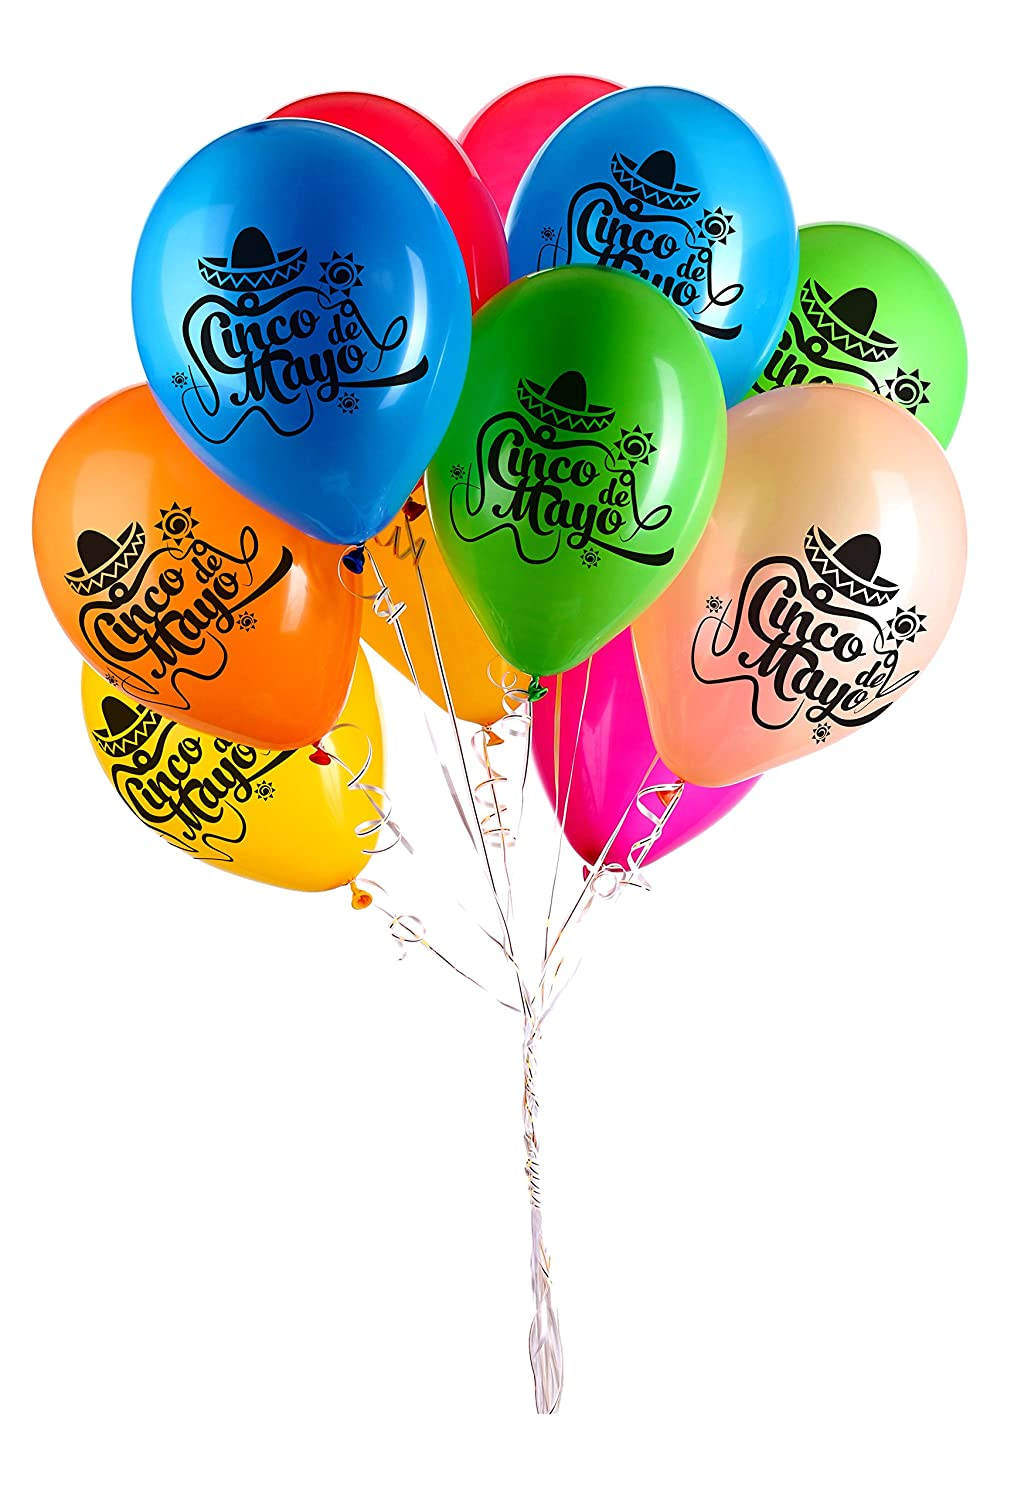 Kaba Flair Cinco De Mayo Balloons - 9 Radiant Colors (Red, Orange, Yellow, Green, Blue, Indigo, Violet, Black, White) - 40 Latex Balloons - with Fun Festive Print - Party with Family & Friends